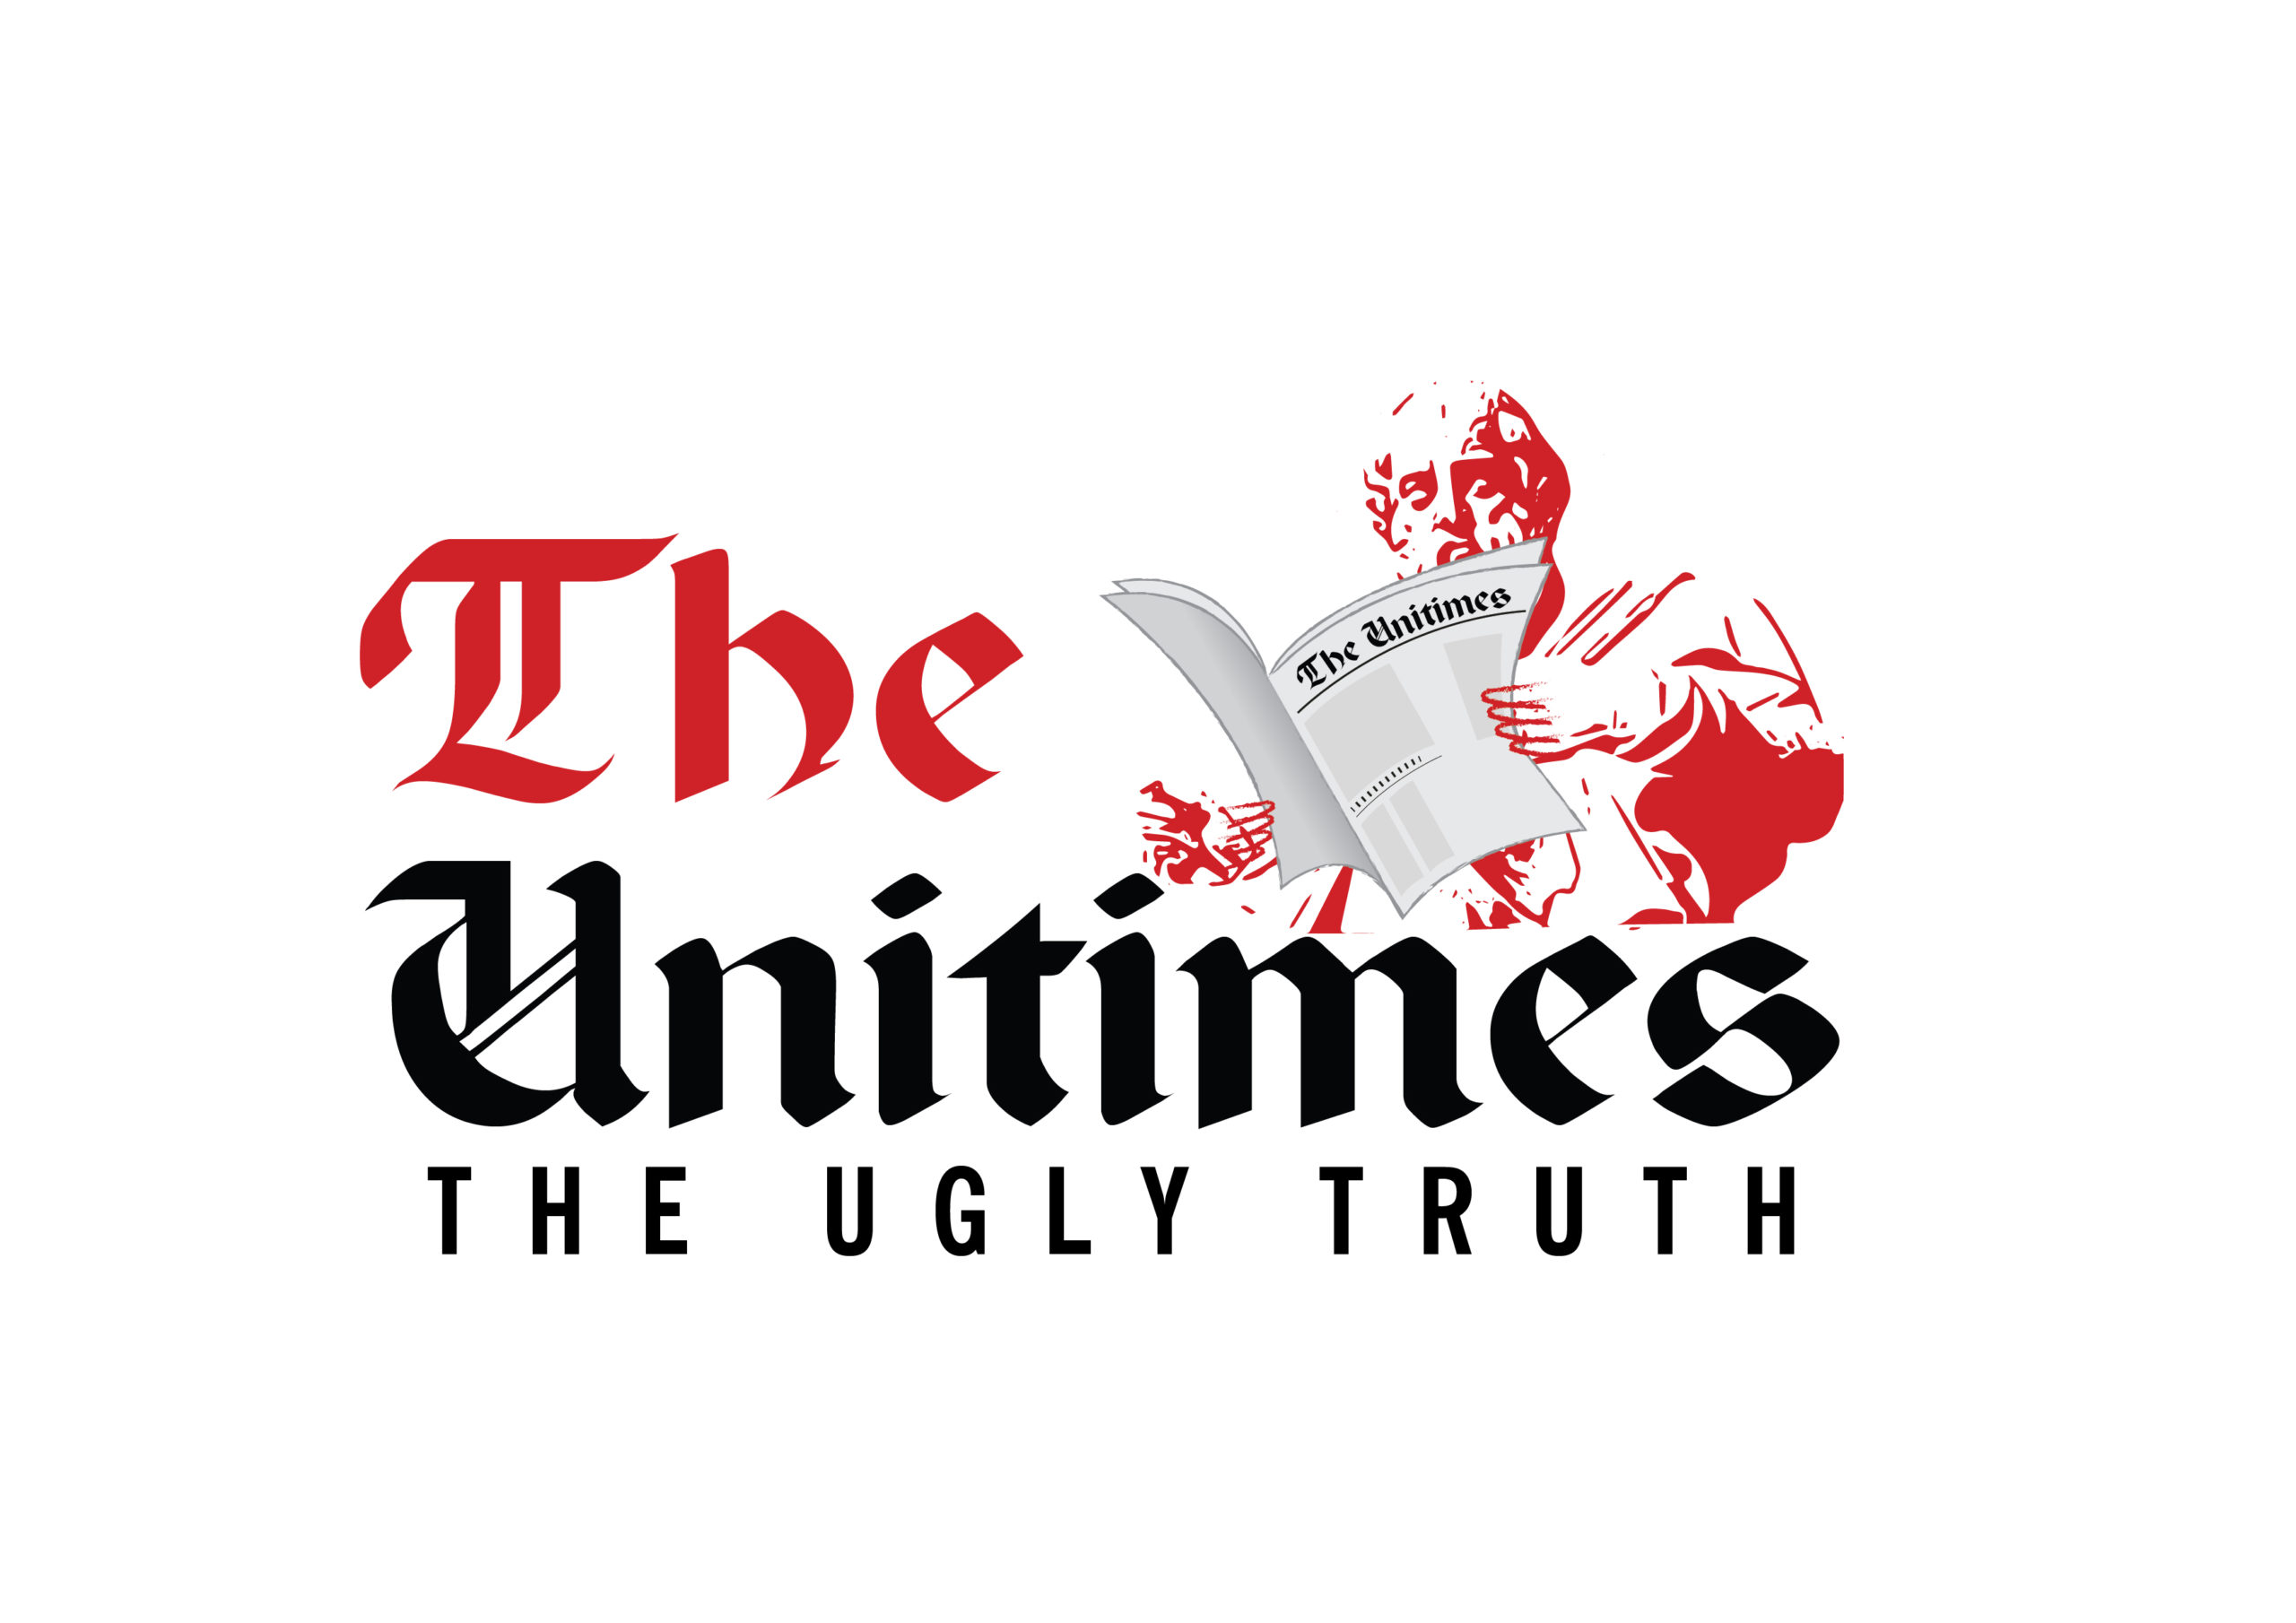 The University Times